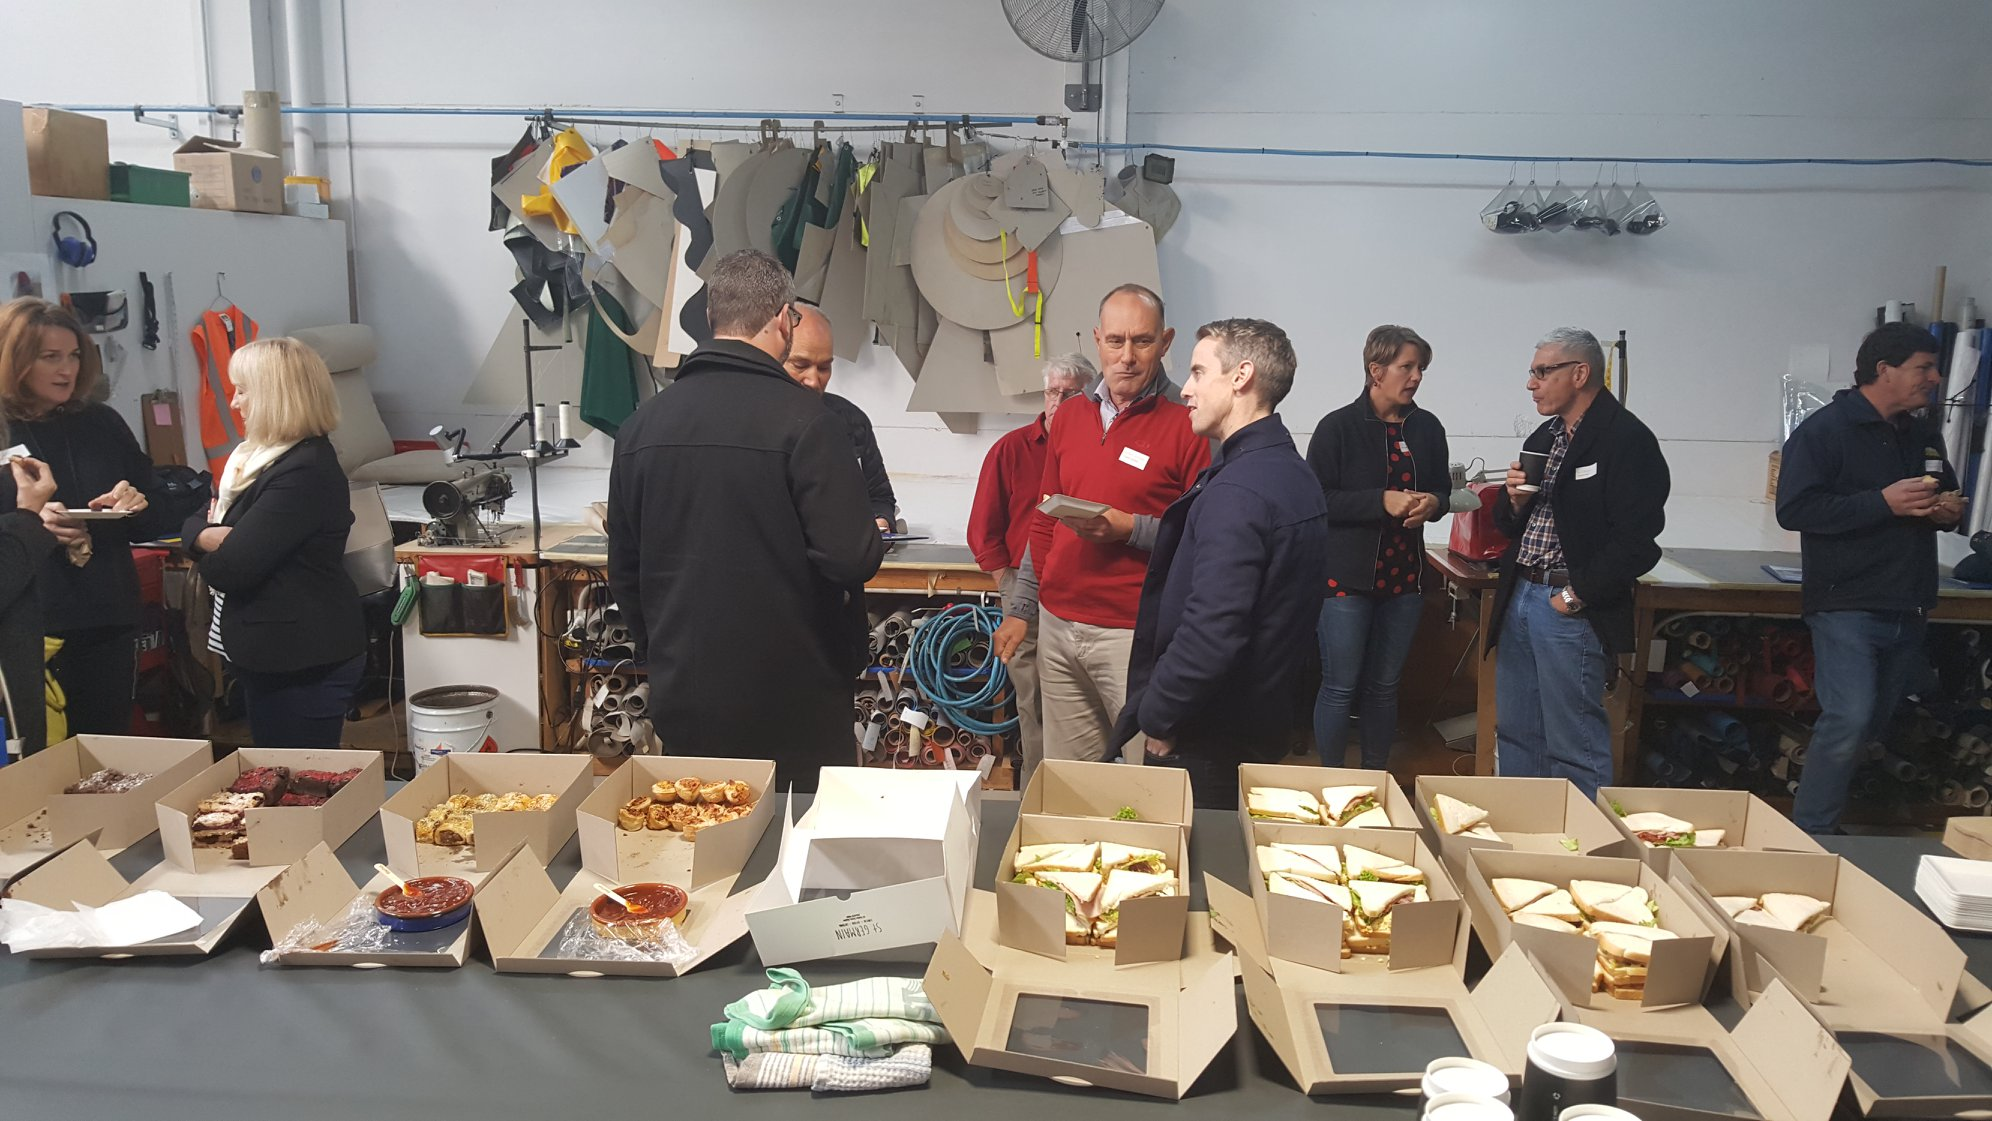 Attendees enjoy nibbles and networking after the Ziptrak® training